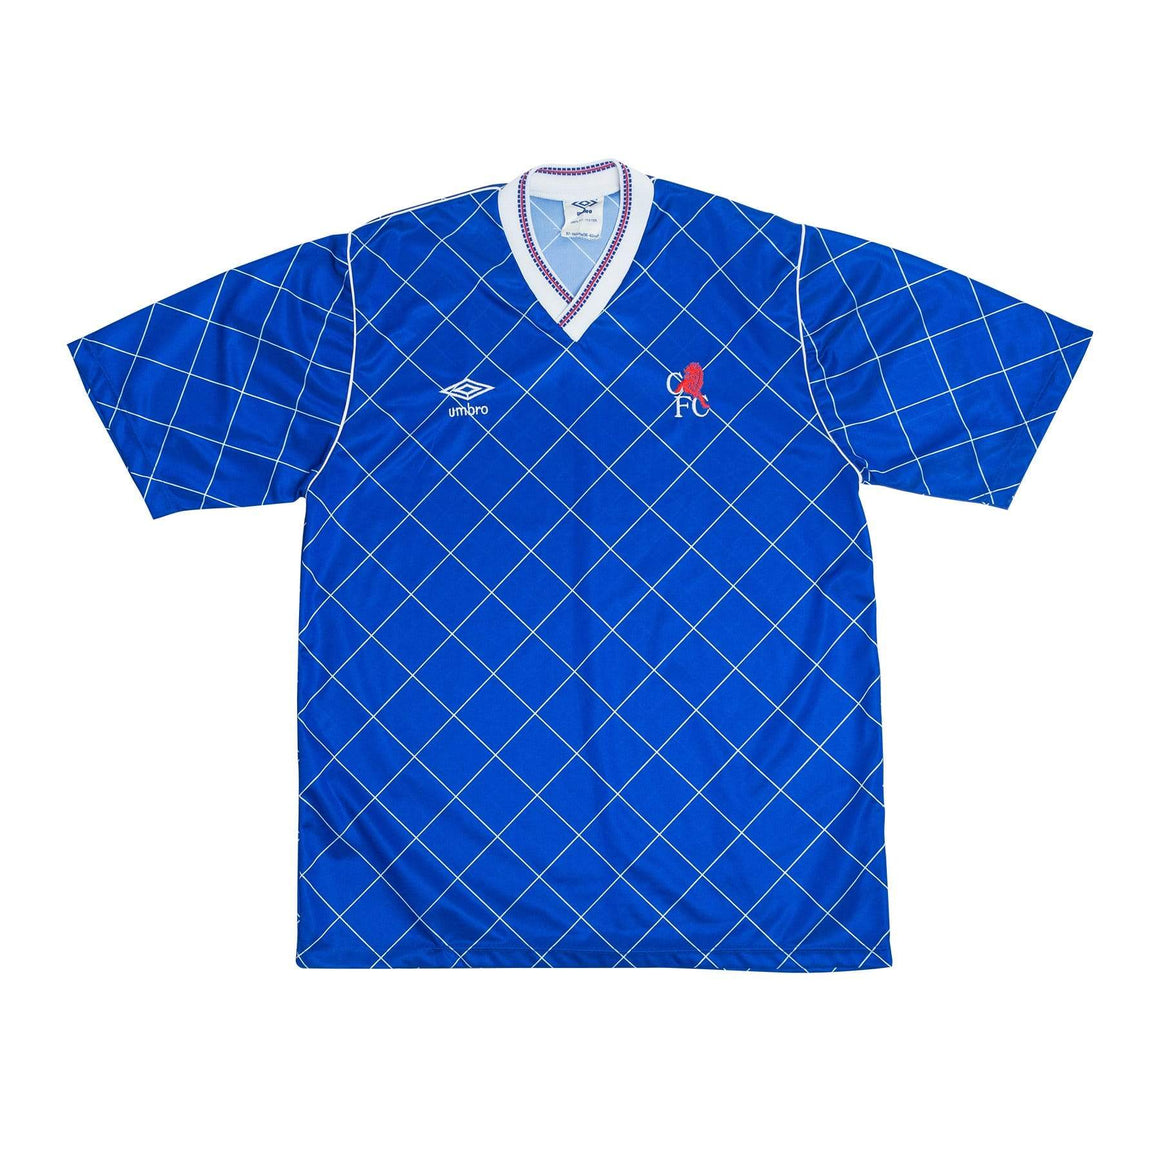 Football Shirt Collective 1987-89 Chelsea home football shirt M (Excellent)